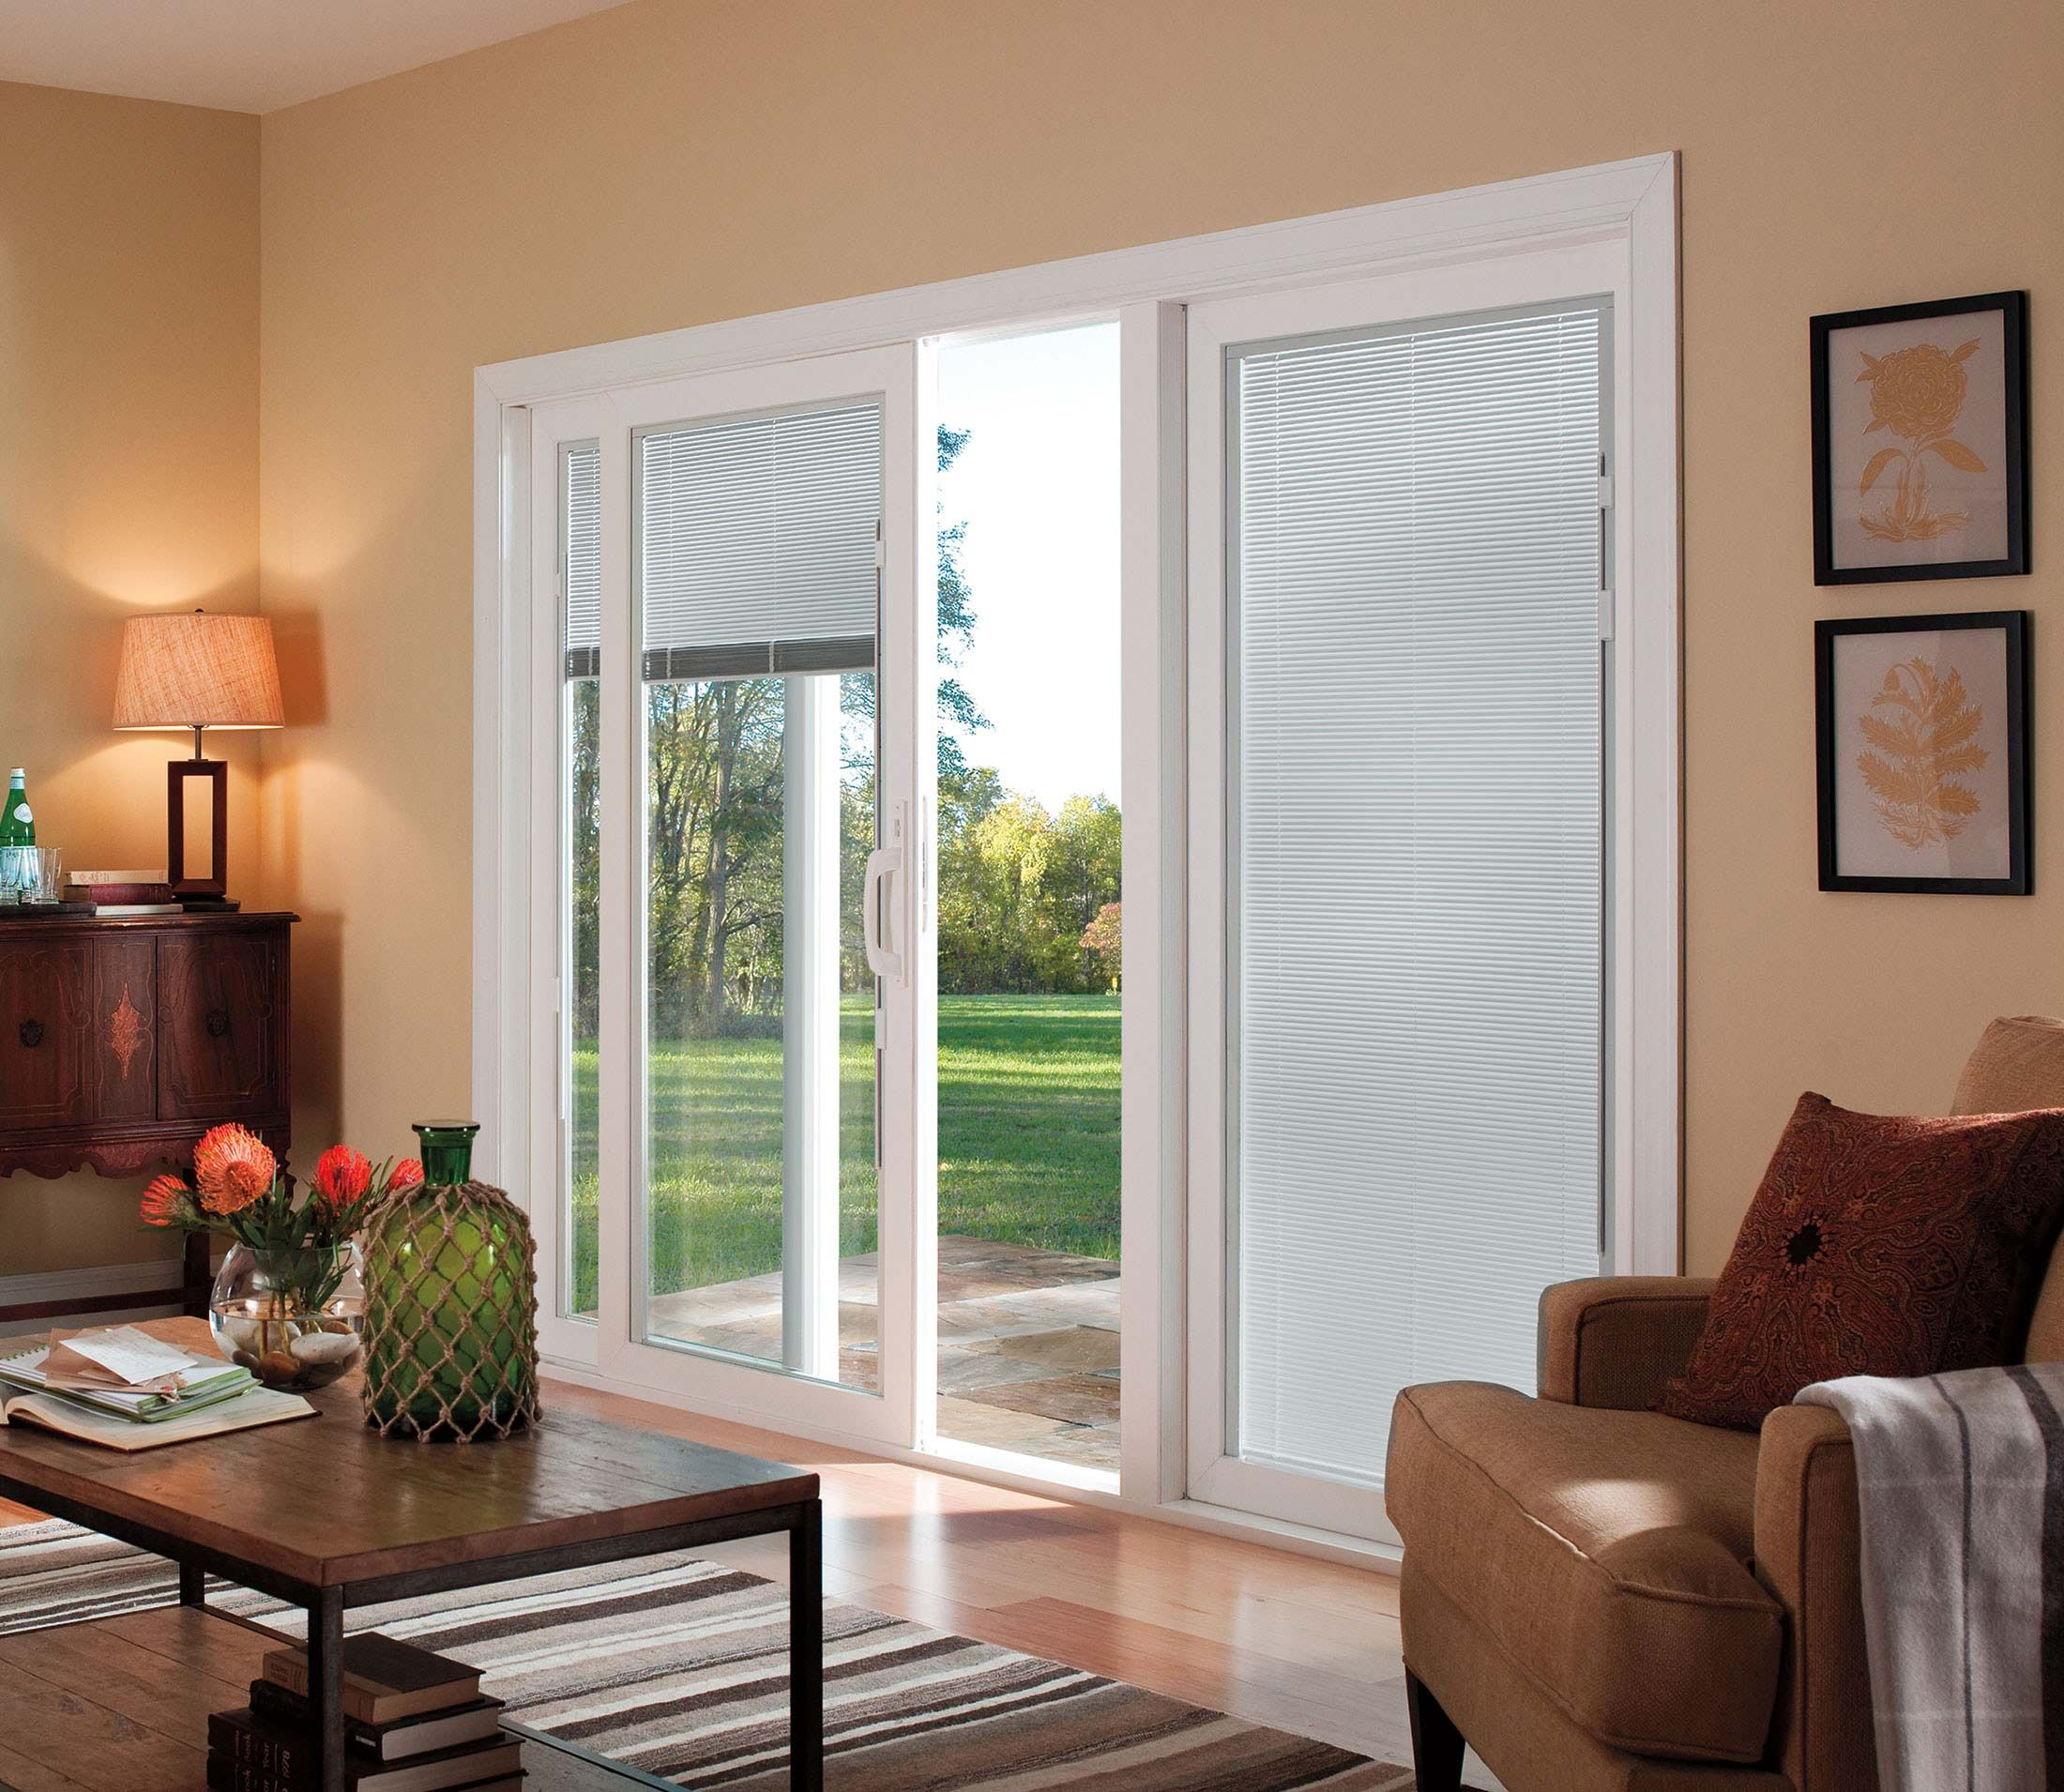 Pella 350 Series Sliding Patio Door | Pella.com Vinyl, Triple Pane Glass